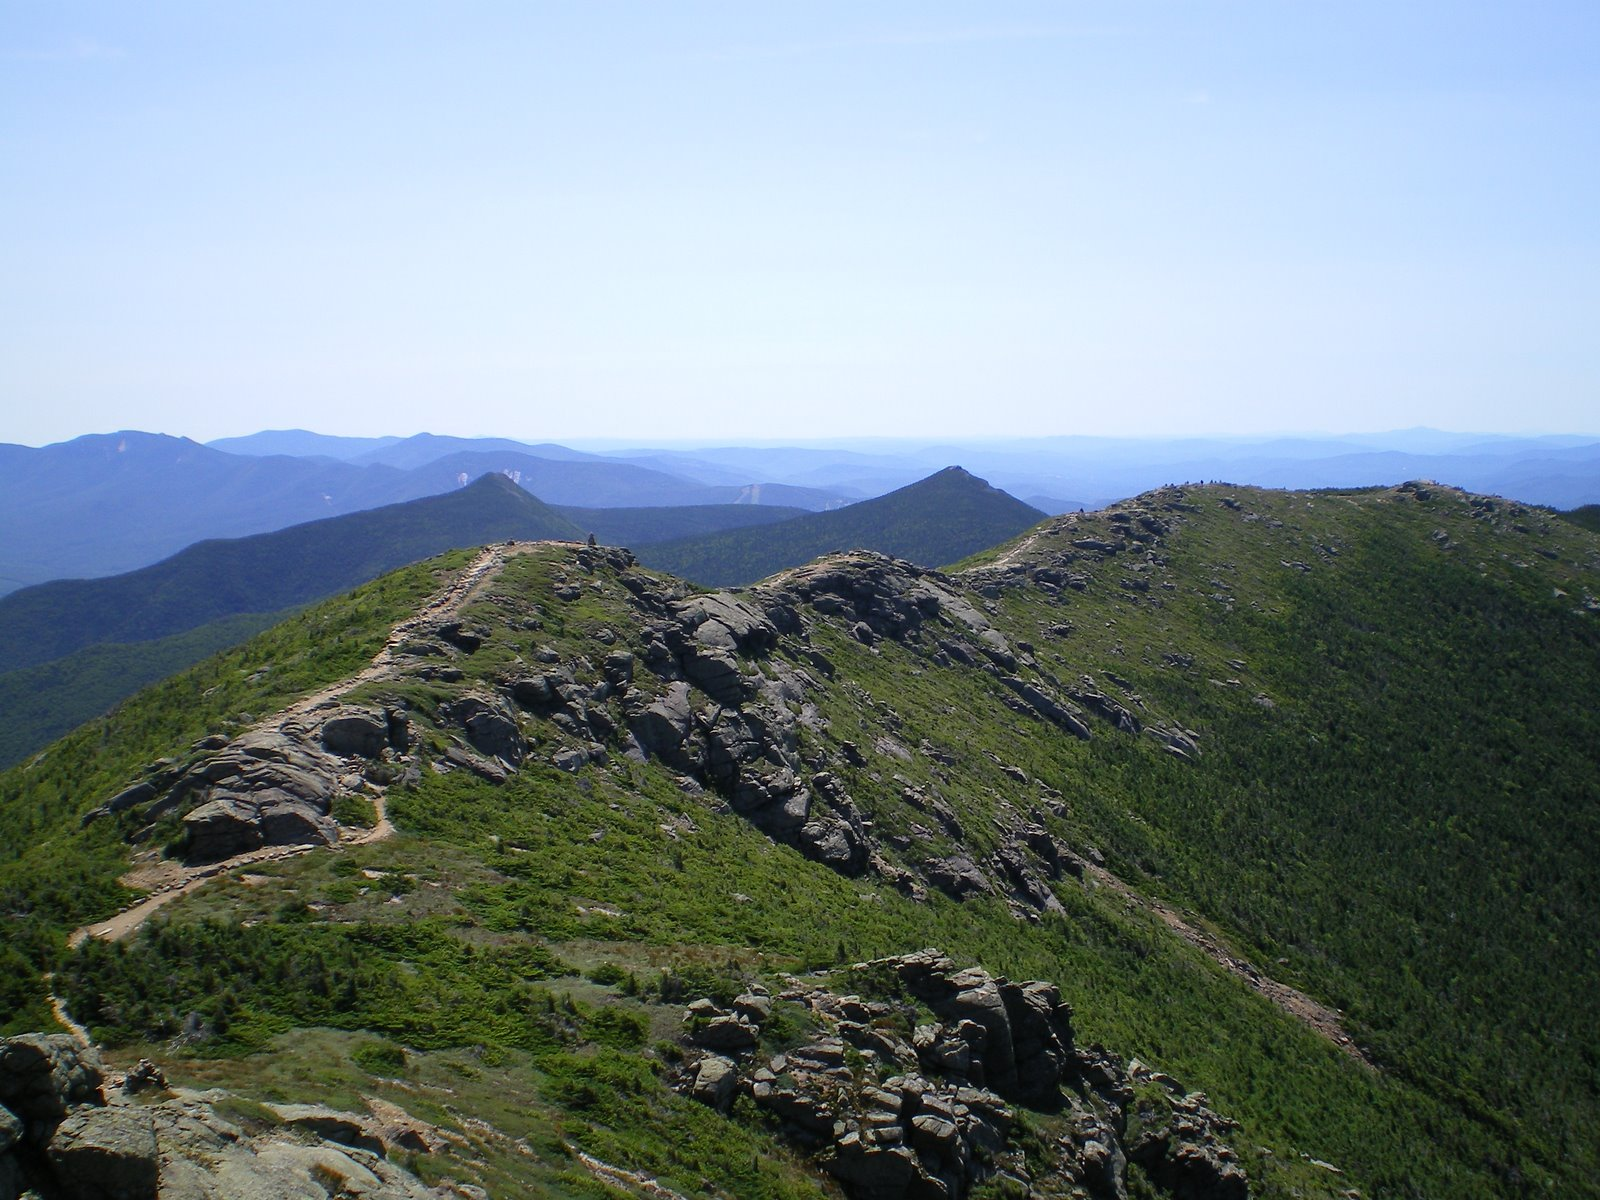 https://upload.wikimedia.org/wikipedia/commons/b/b2/AT_-_Franconia_Ridge.JPG